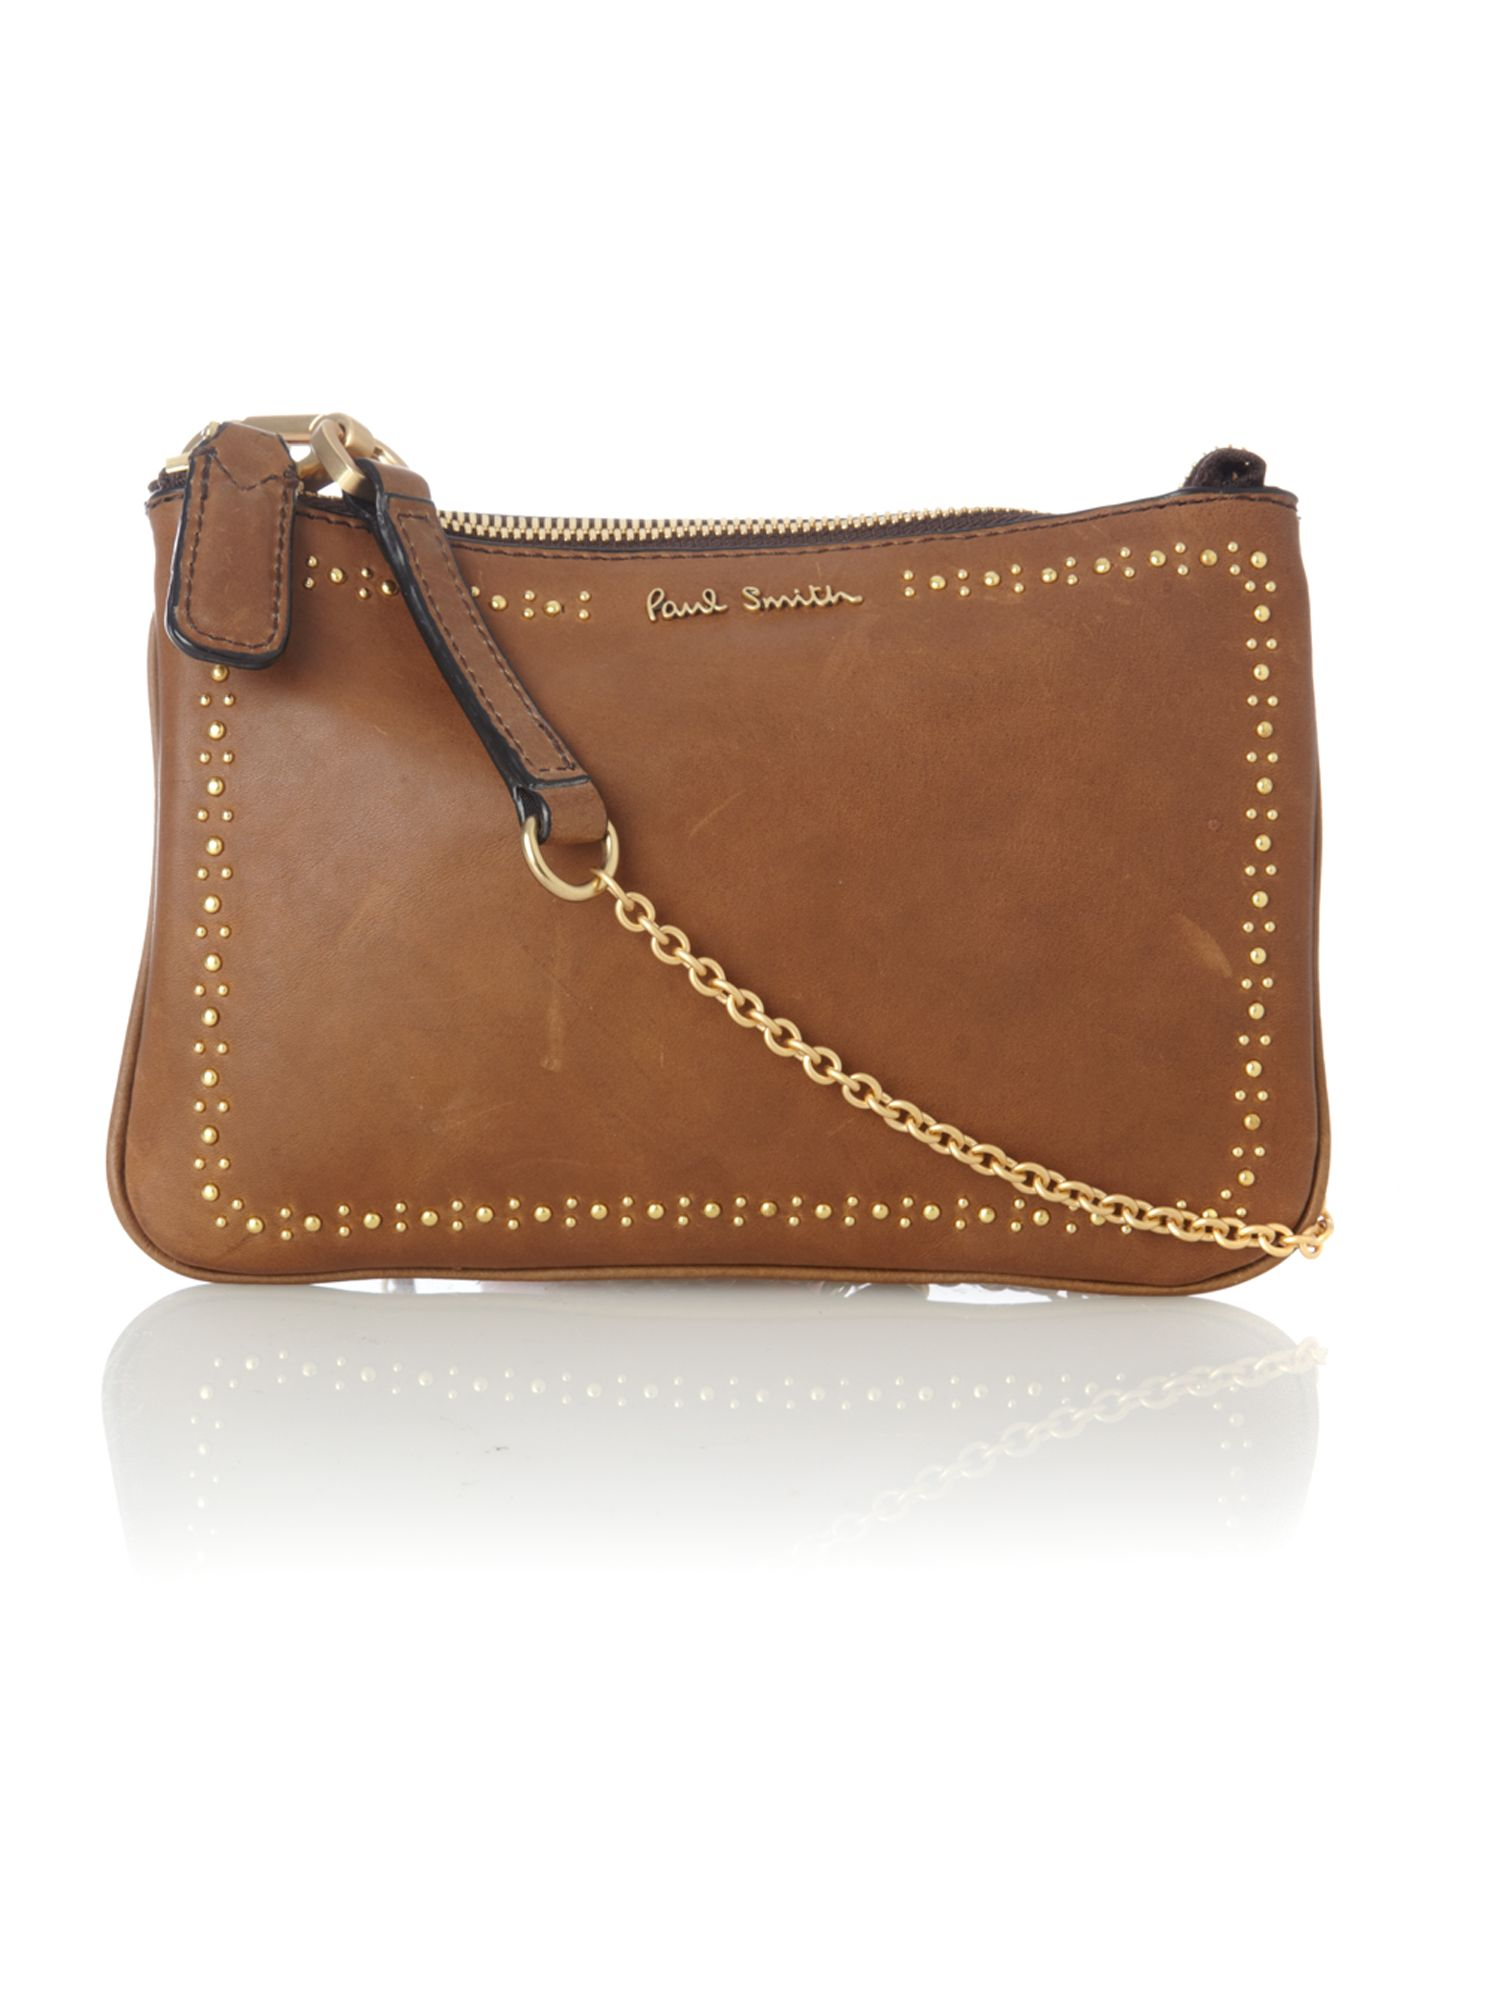 Paul Smith British Broguing Small Leather Cross Body Bag